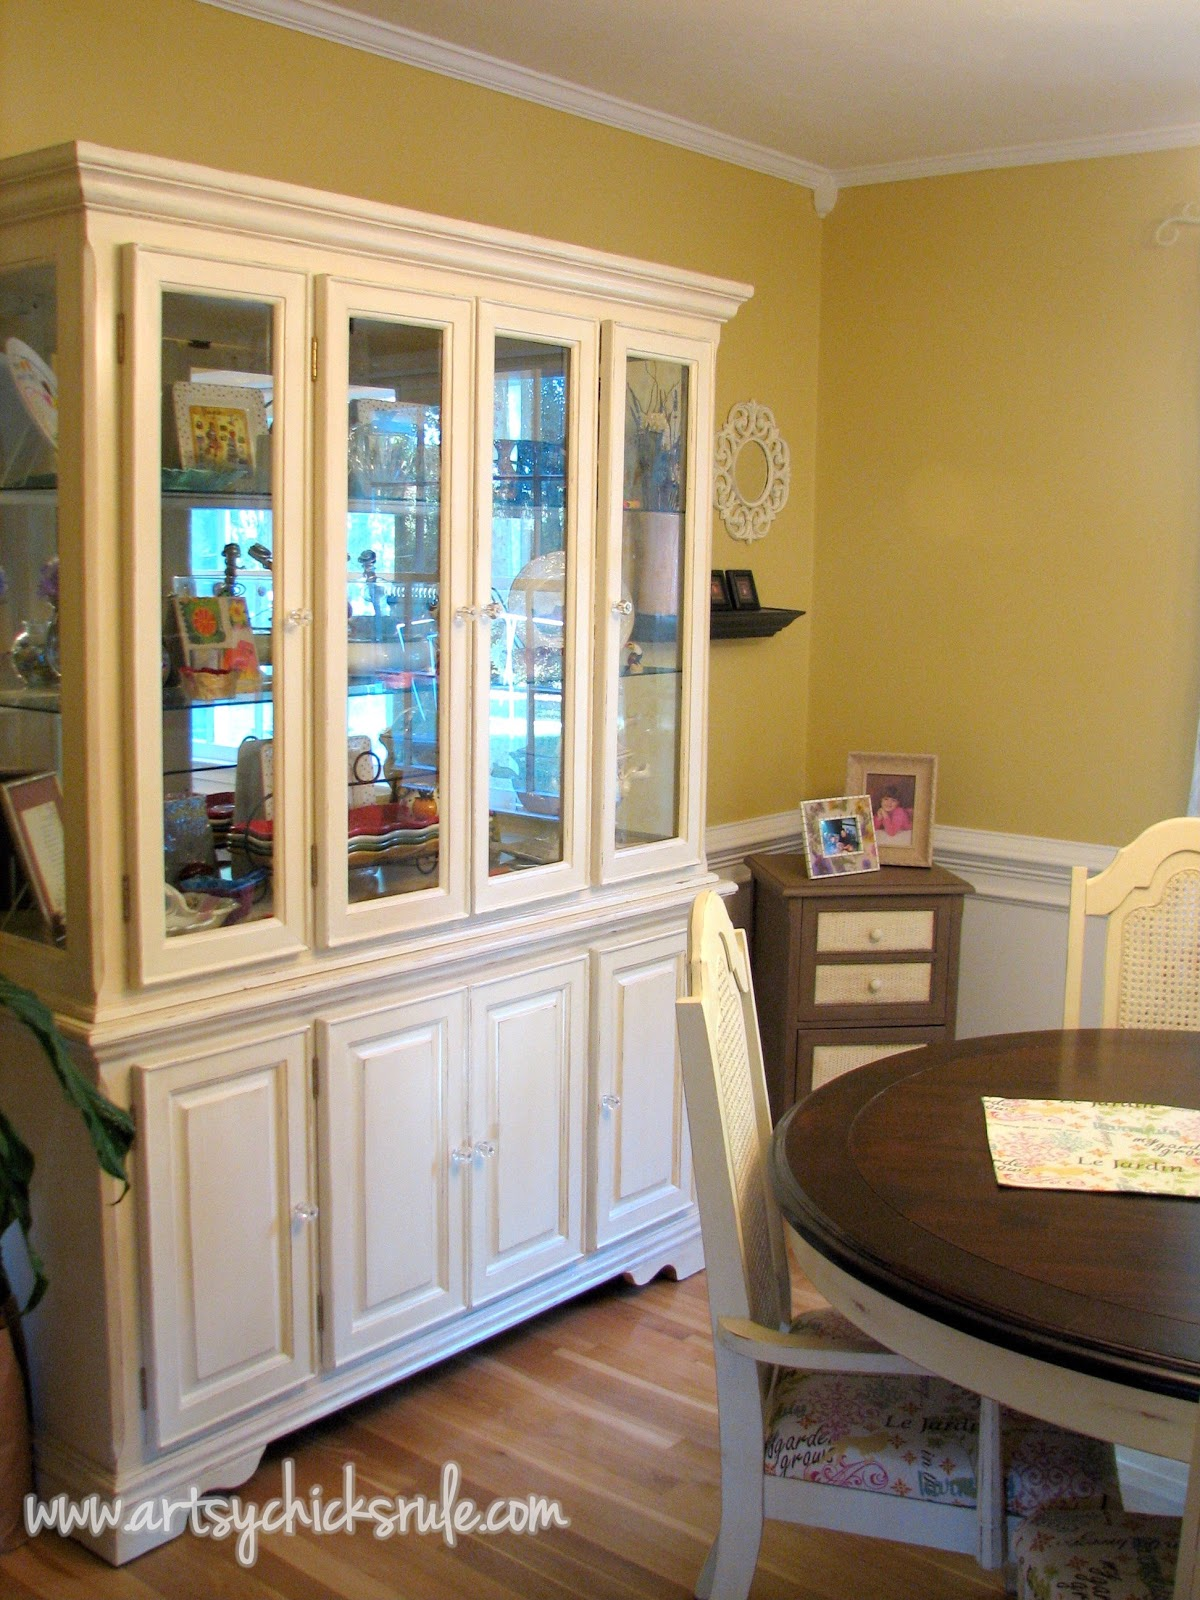 China Cabinet And Dining Table Re-New